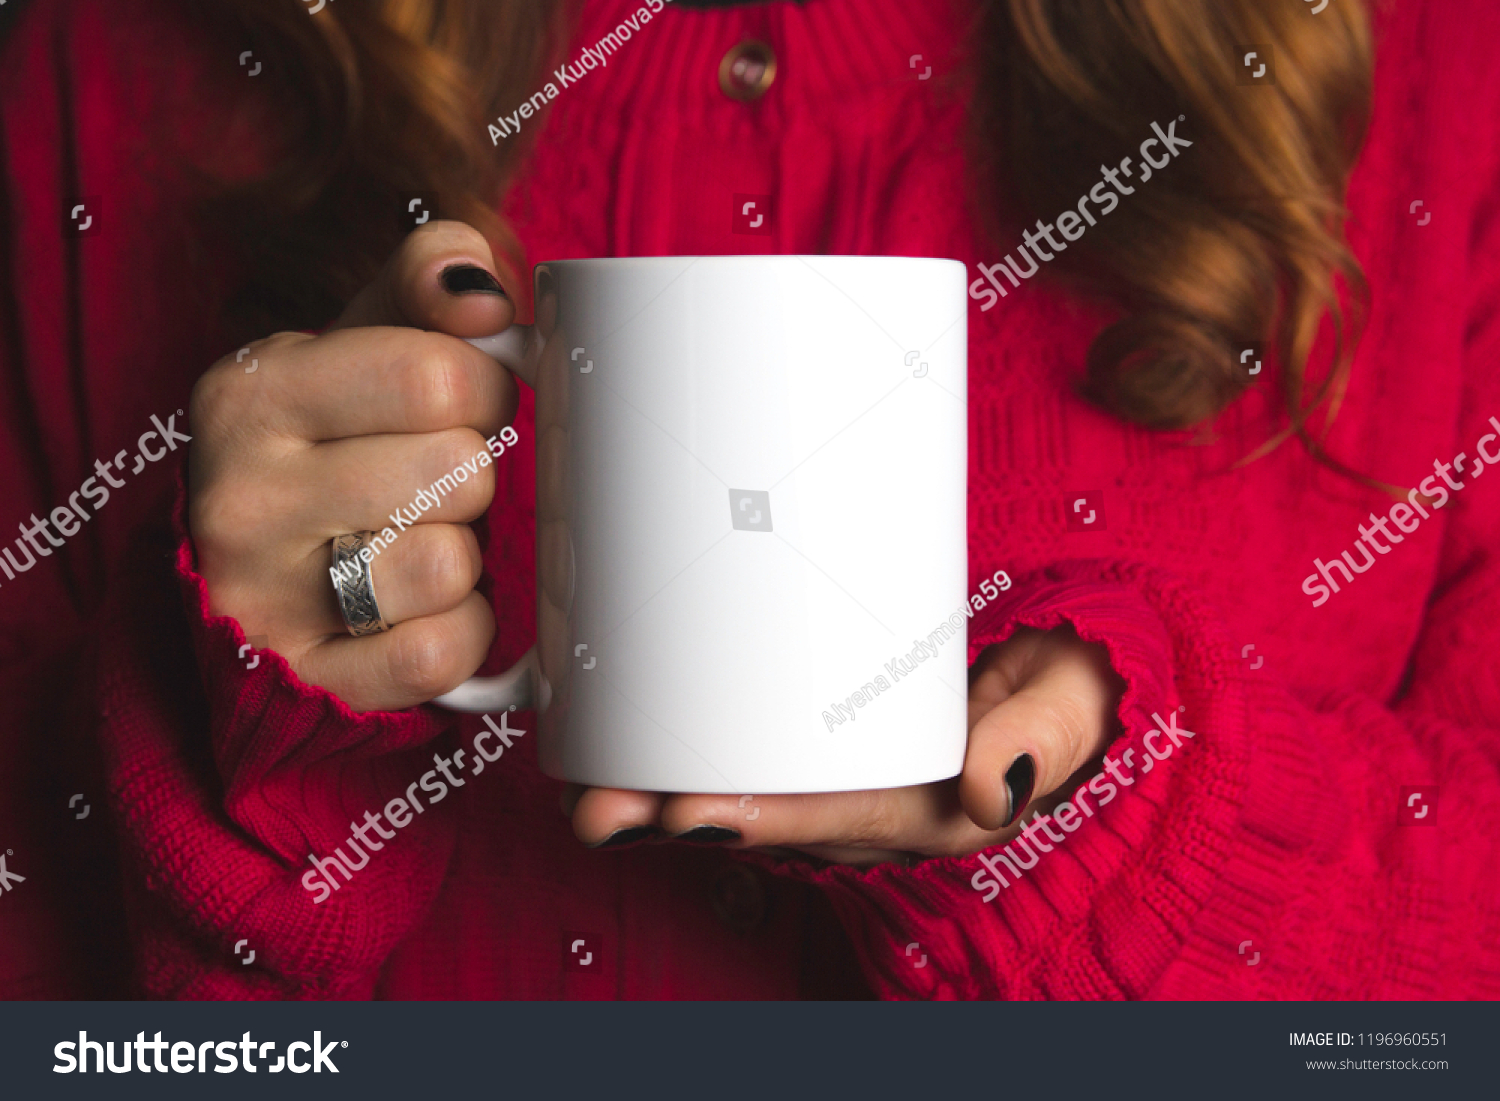 white mug mockup , red jacket